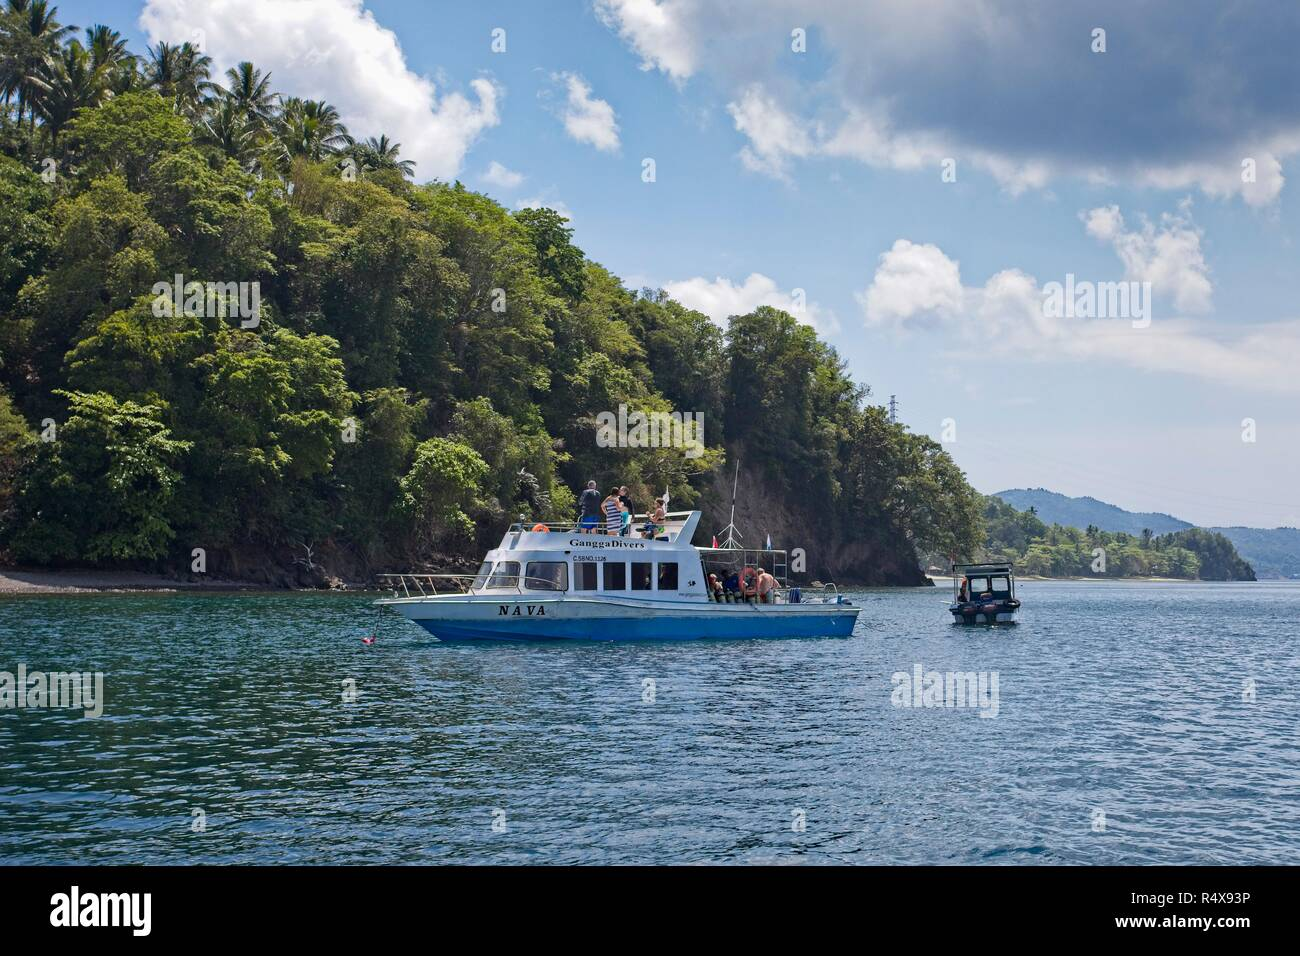 Dive boat, Lembeh Strait, North Sulawesi, Indonesia - Stock Image